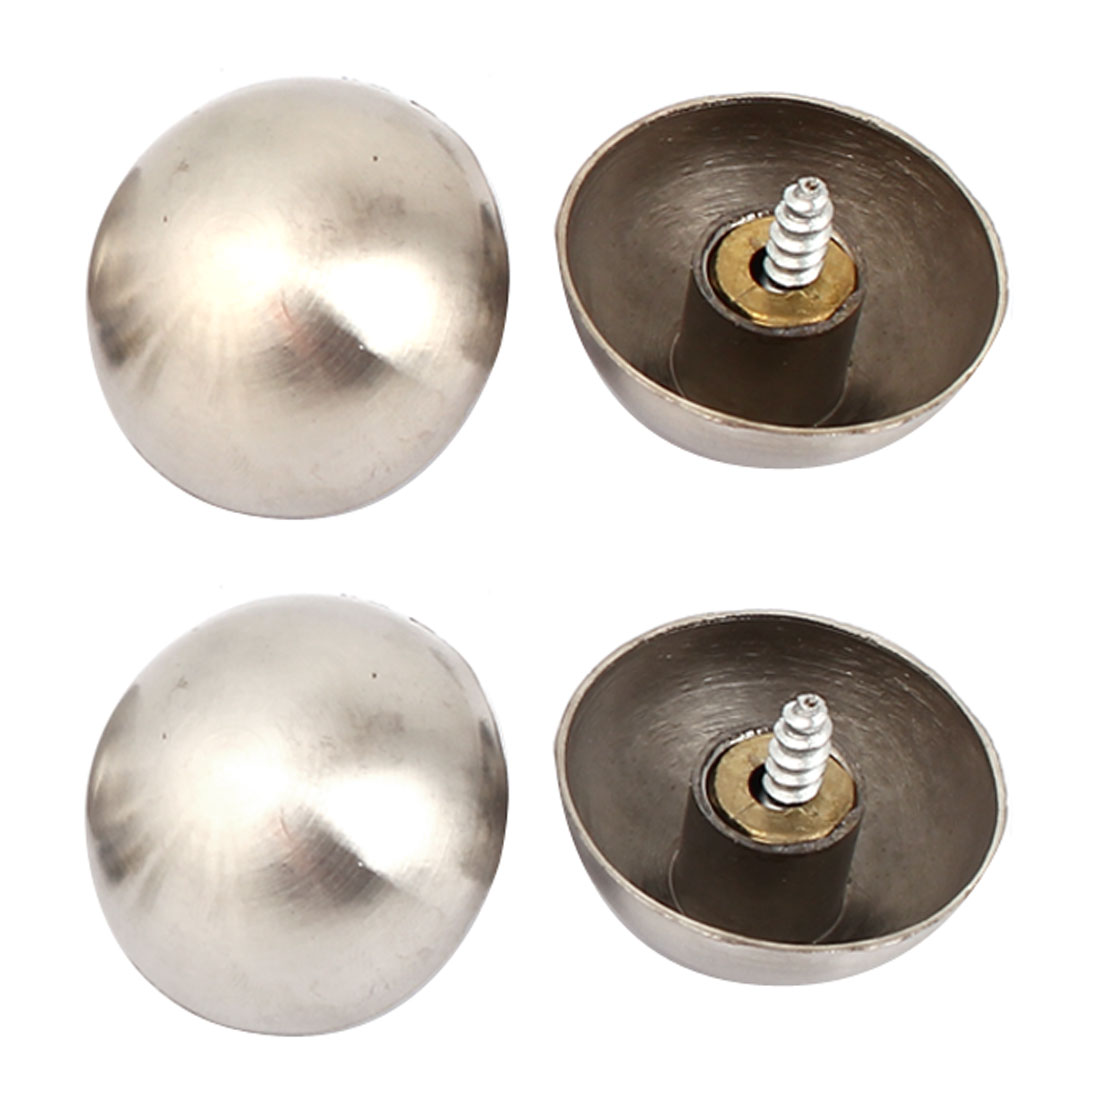 28mm Stainless Steel Screw Cap Mirror Nails Decorative Fittings 4 Pcs